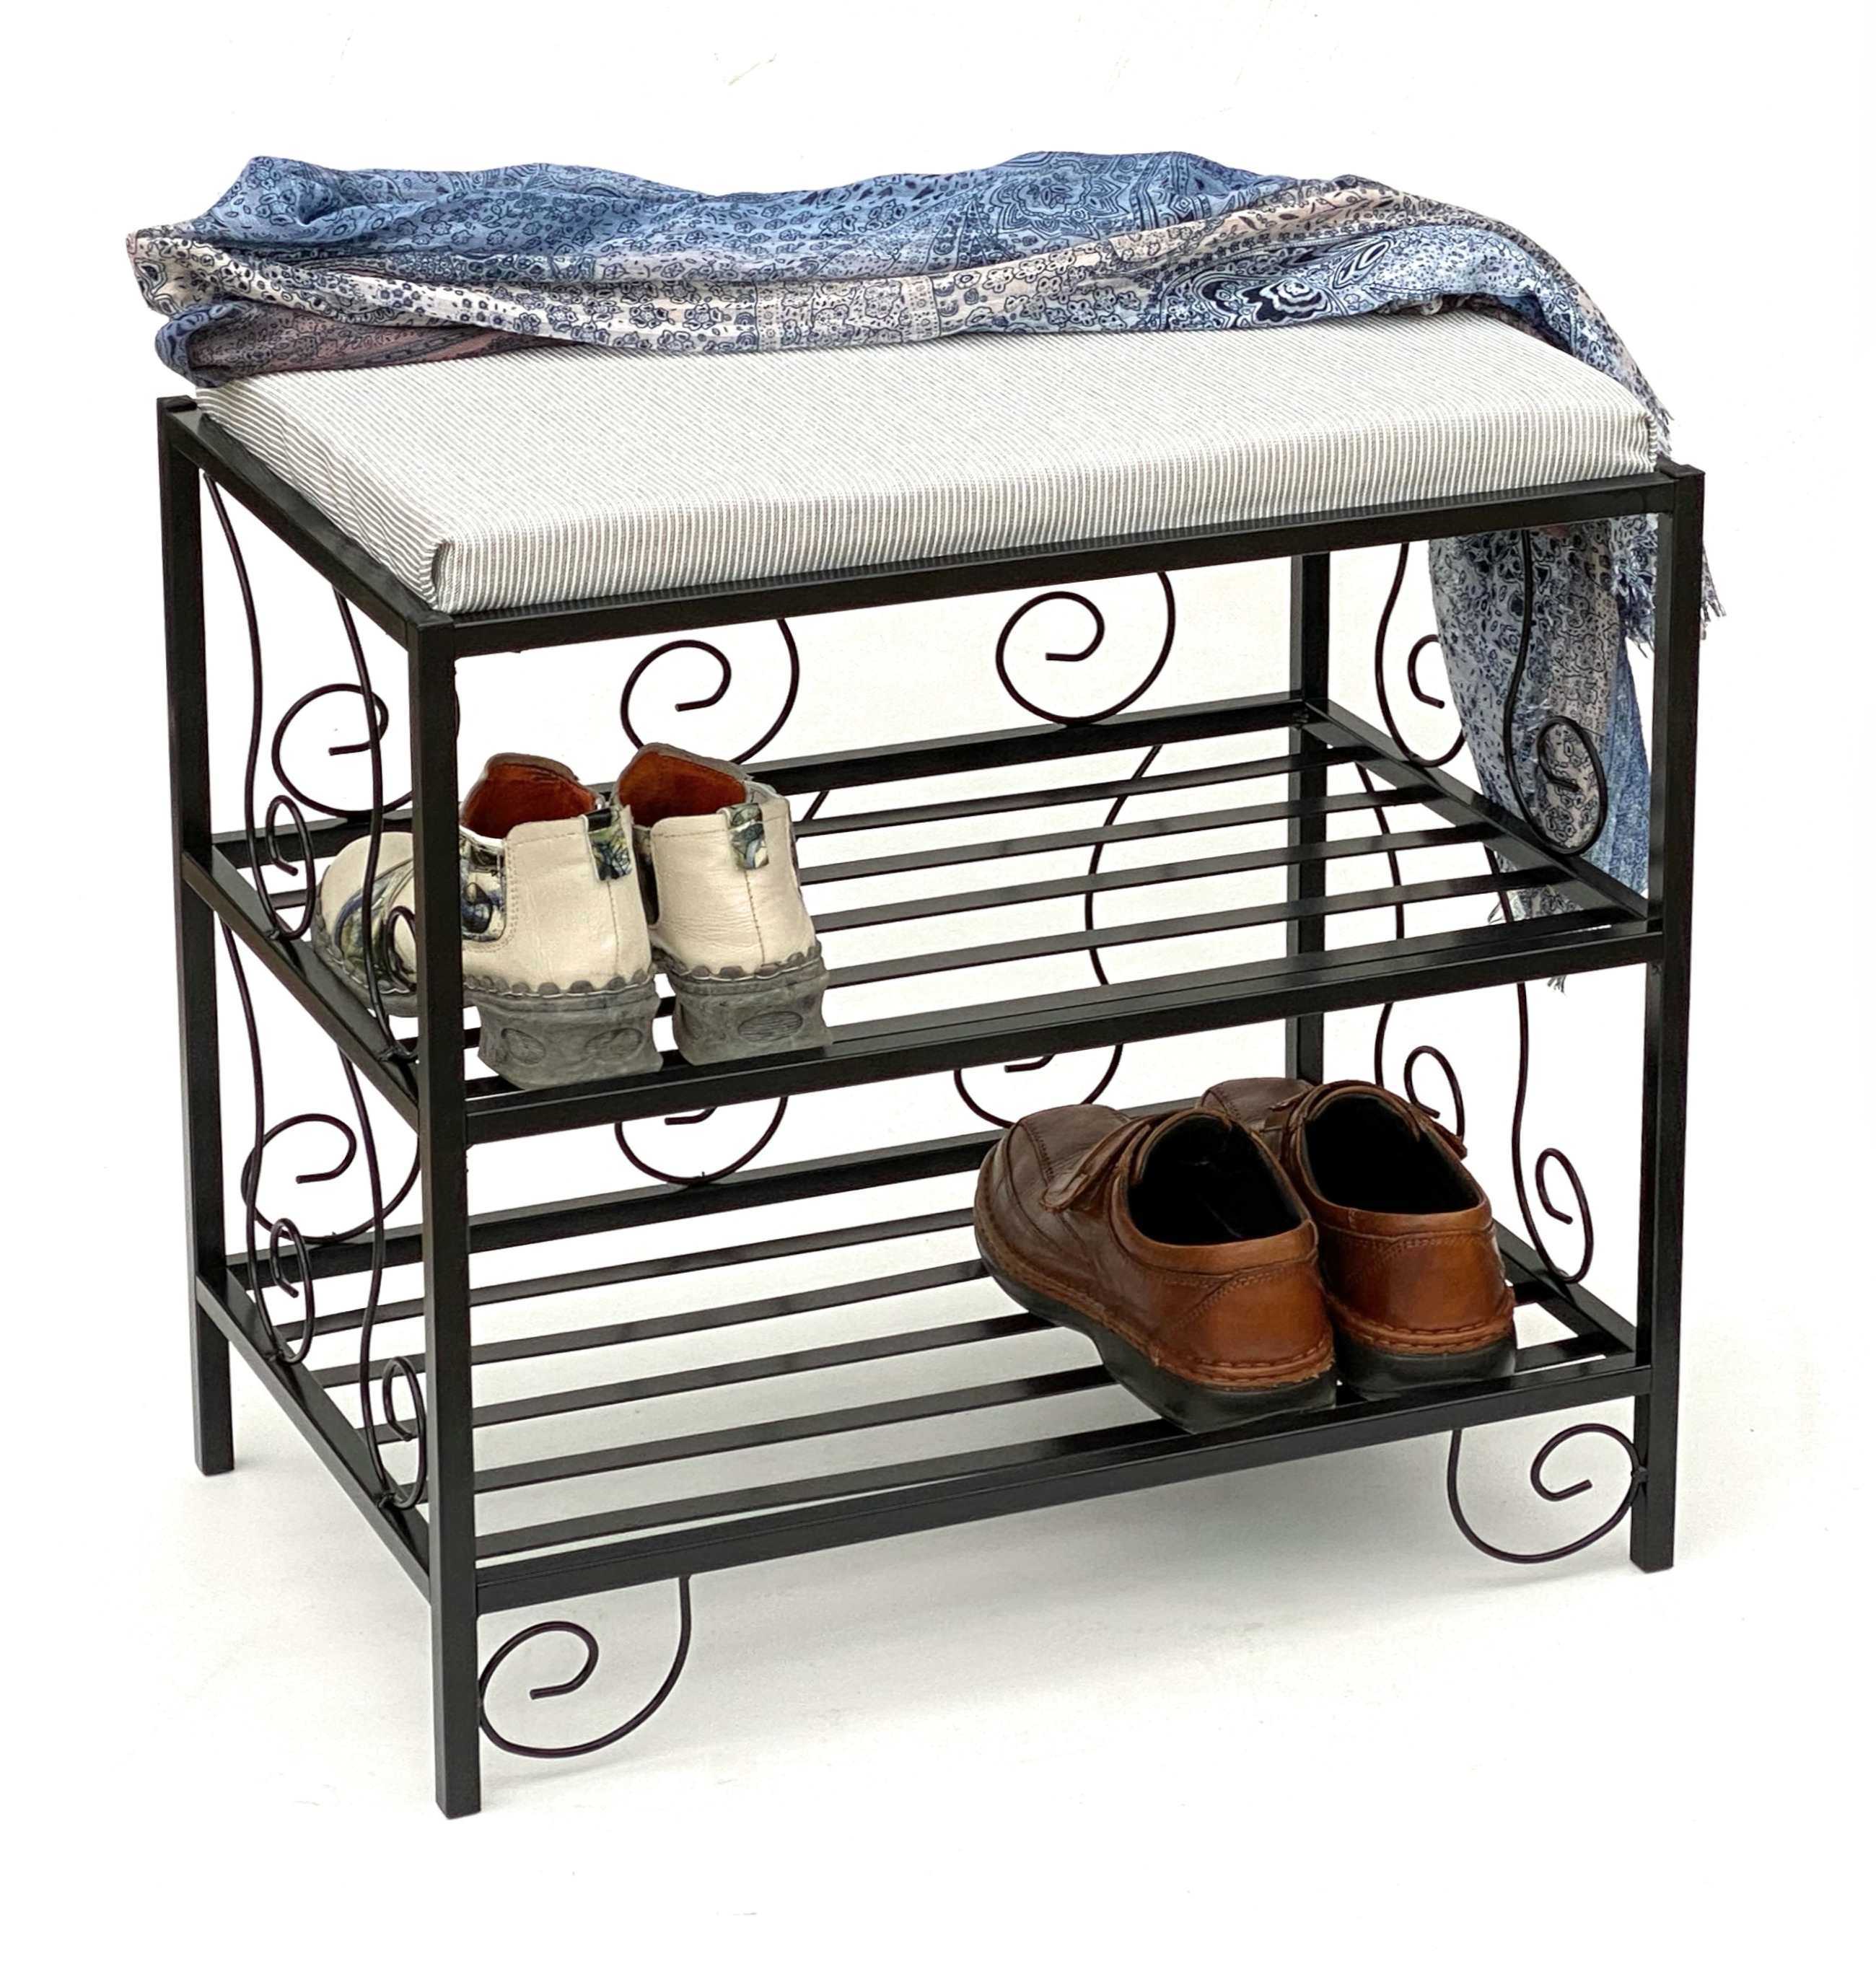 schuhregal mit sitzbank kw086 bank 60cm schuhschrank aus metall schuhablage ebay. Black Bedroom Furniture Sets. Home Design Ideas